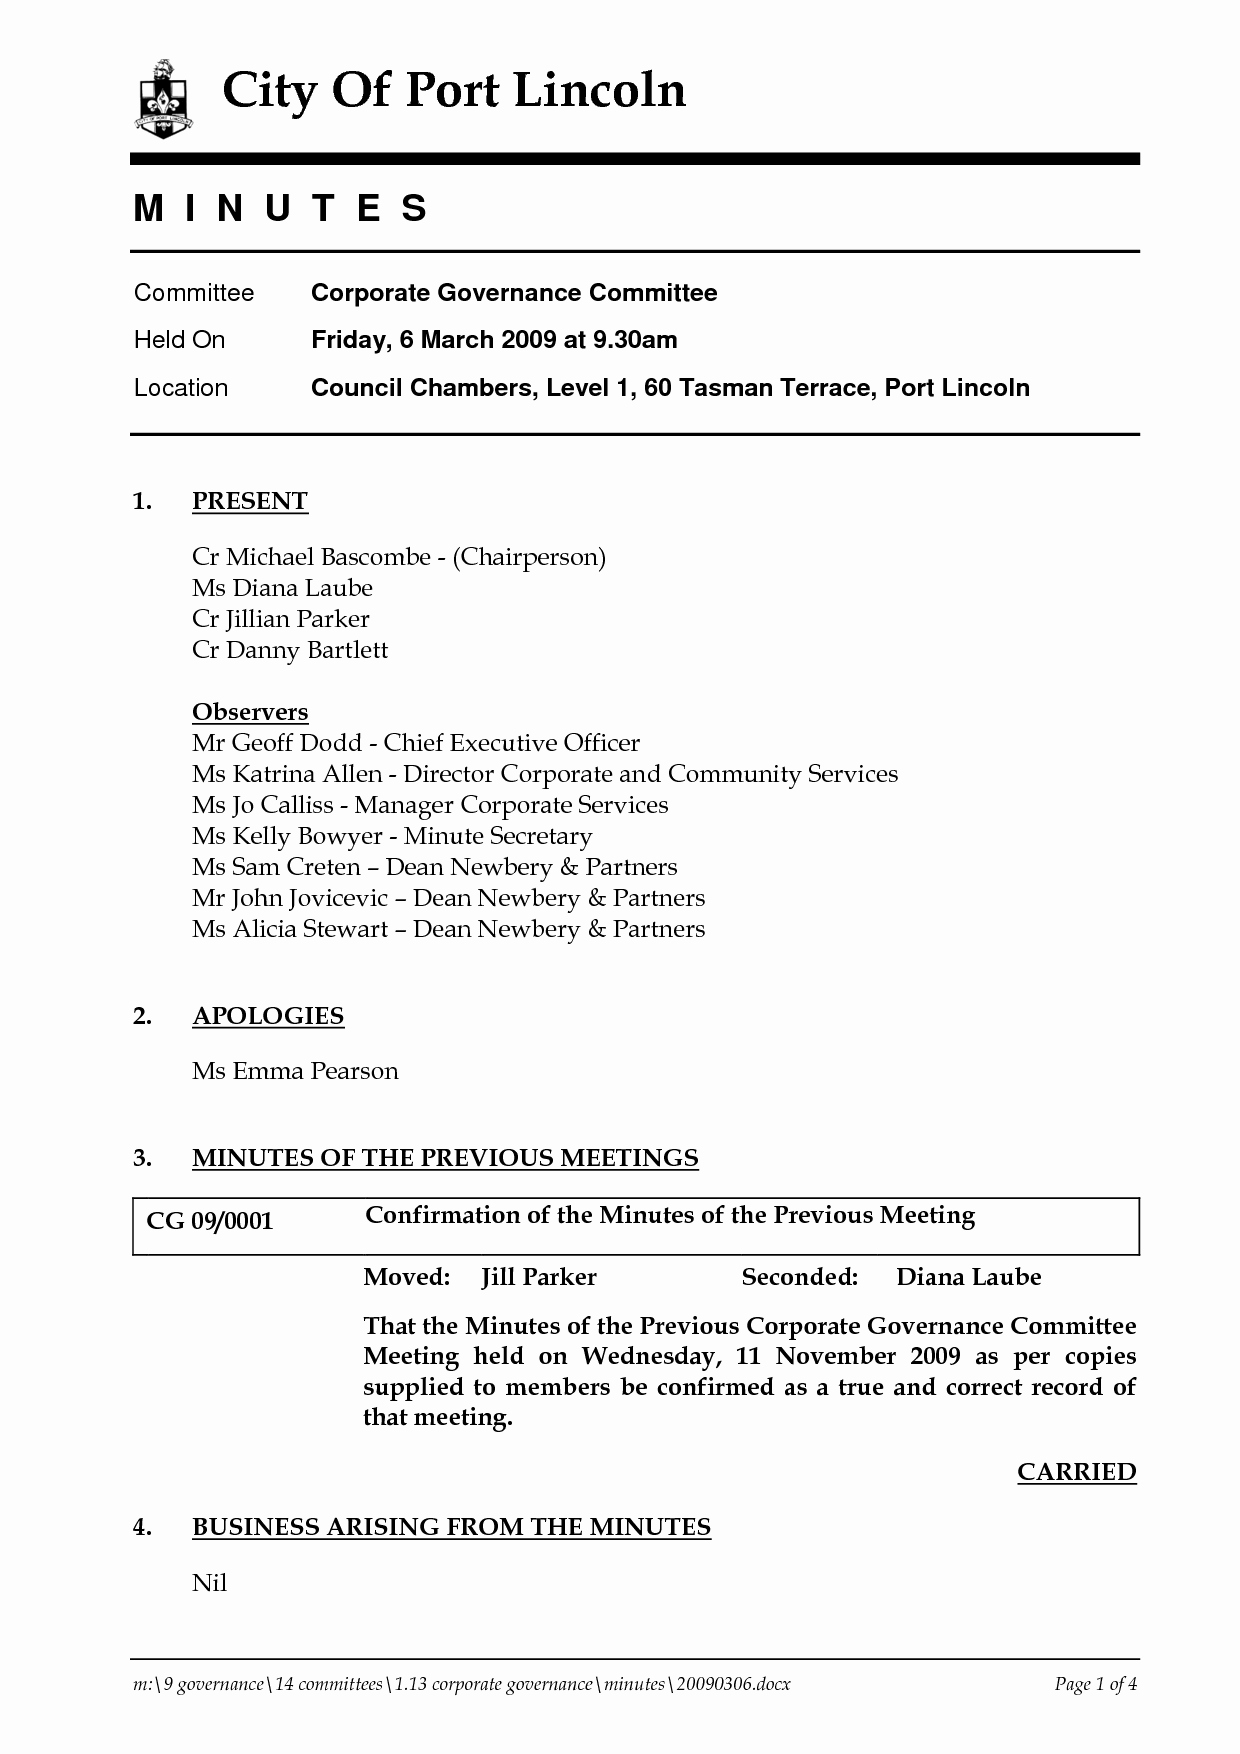 S Corp Meeting Minutes Template Unique Corporate Minutes Template